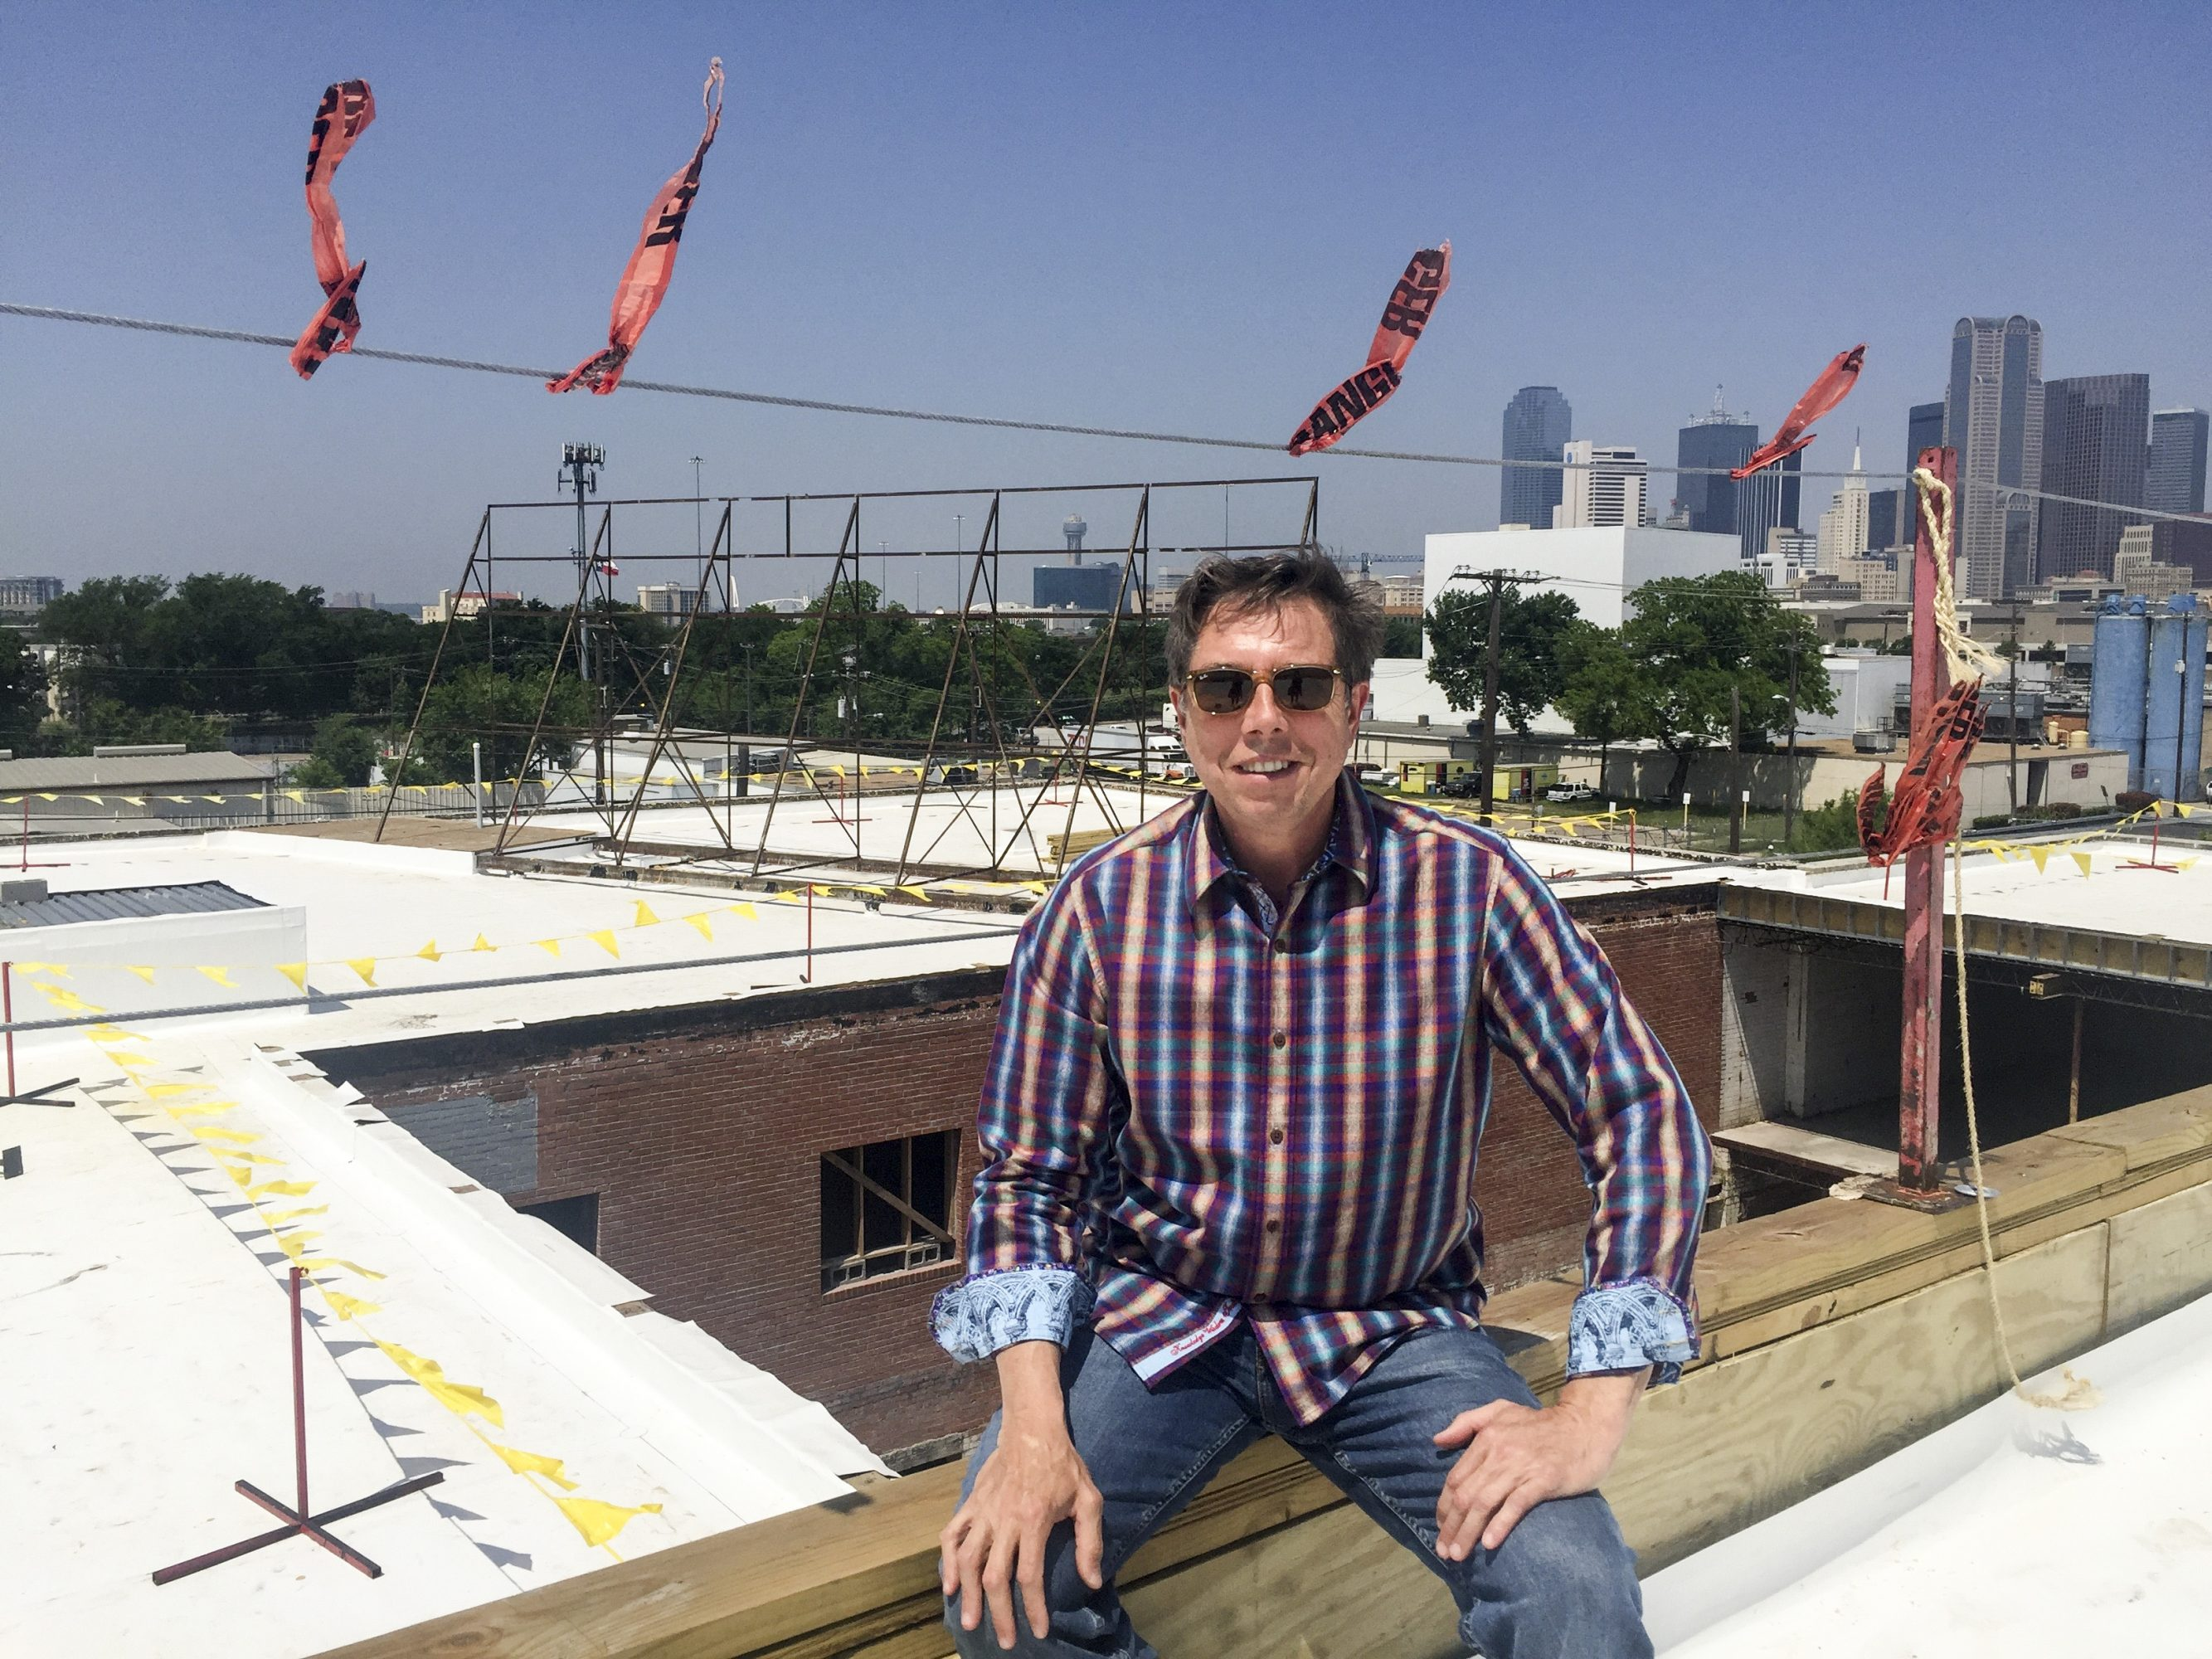 Architect Gary Gene Olp has been working on the 1808 project.